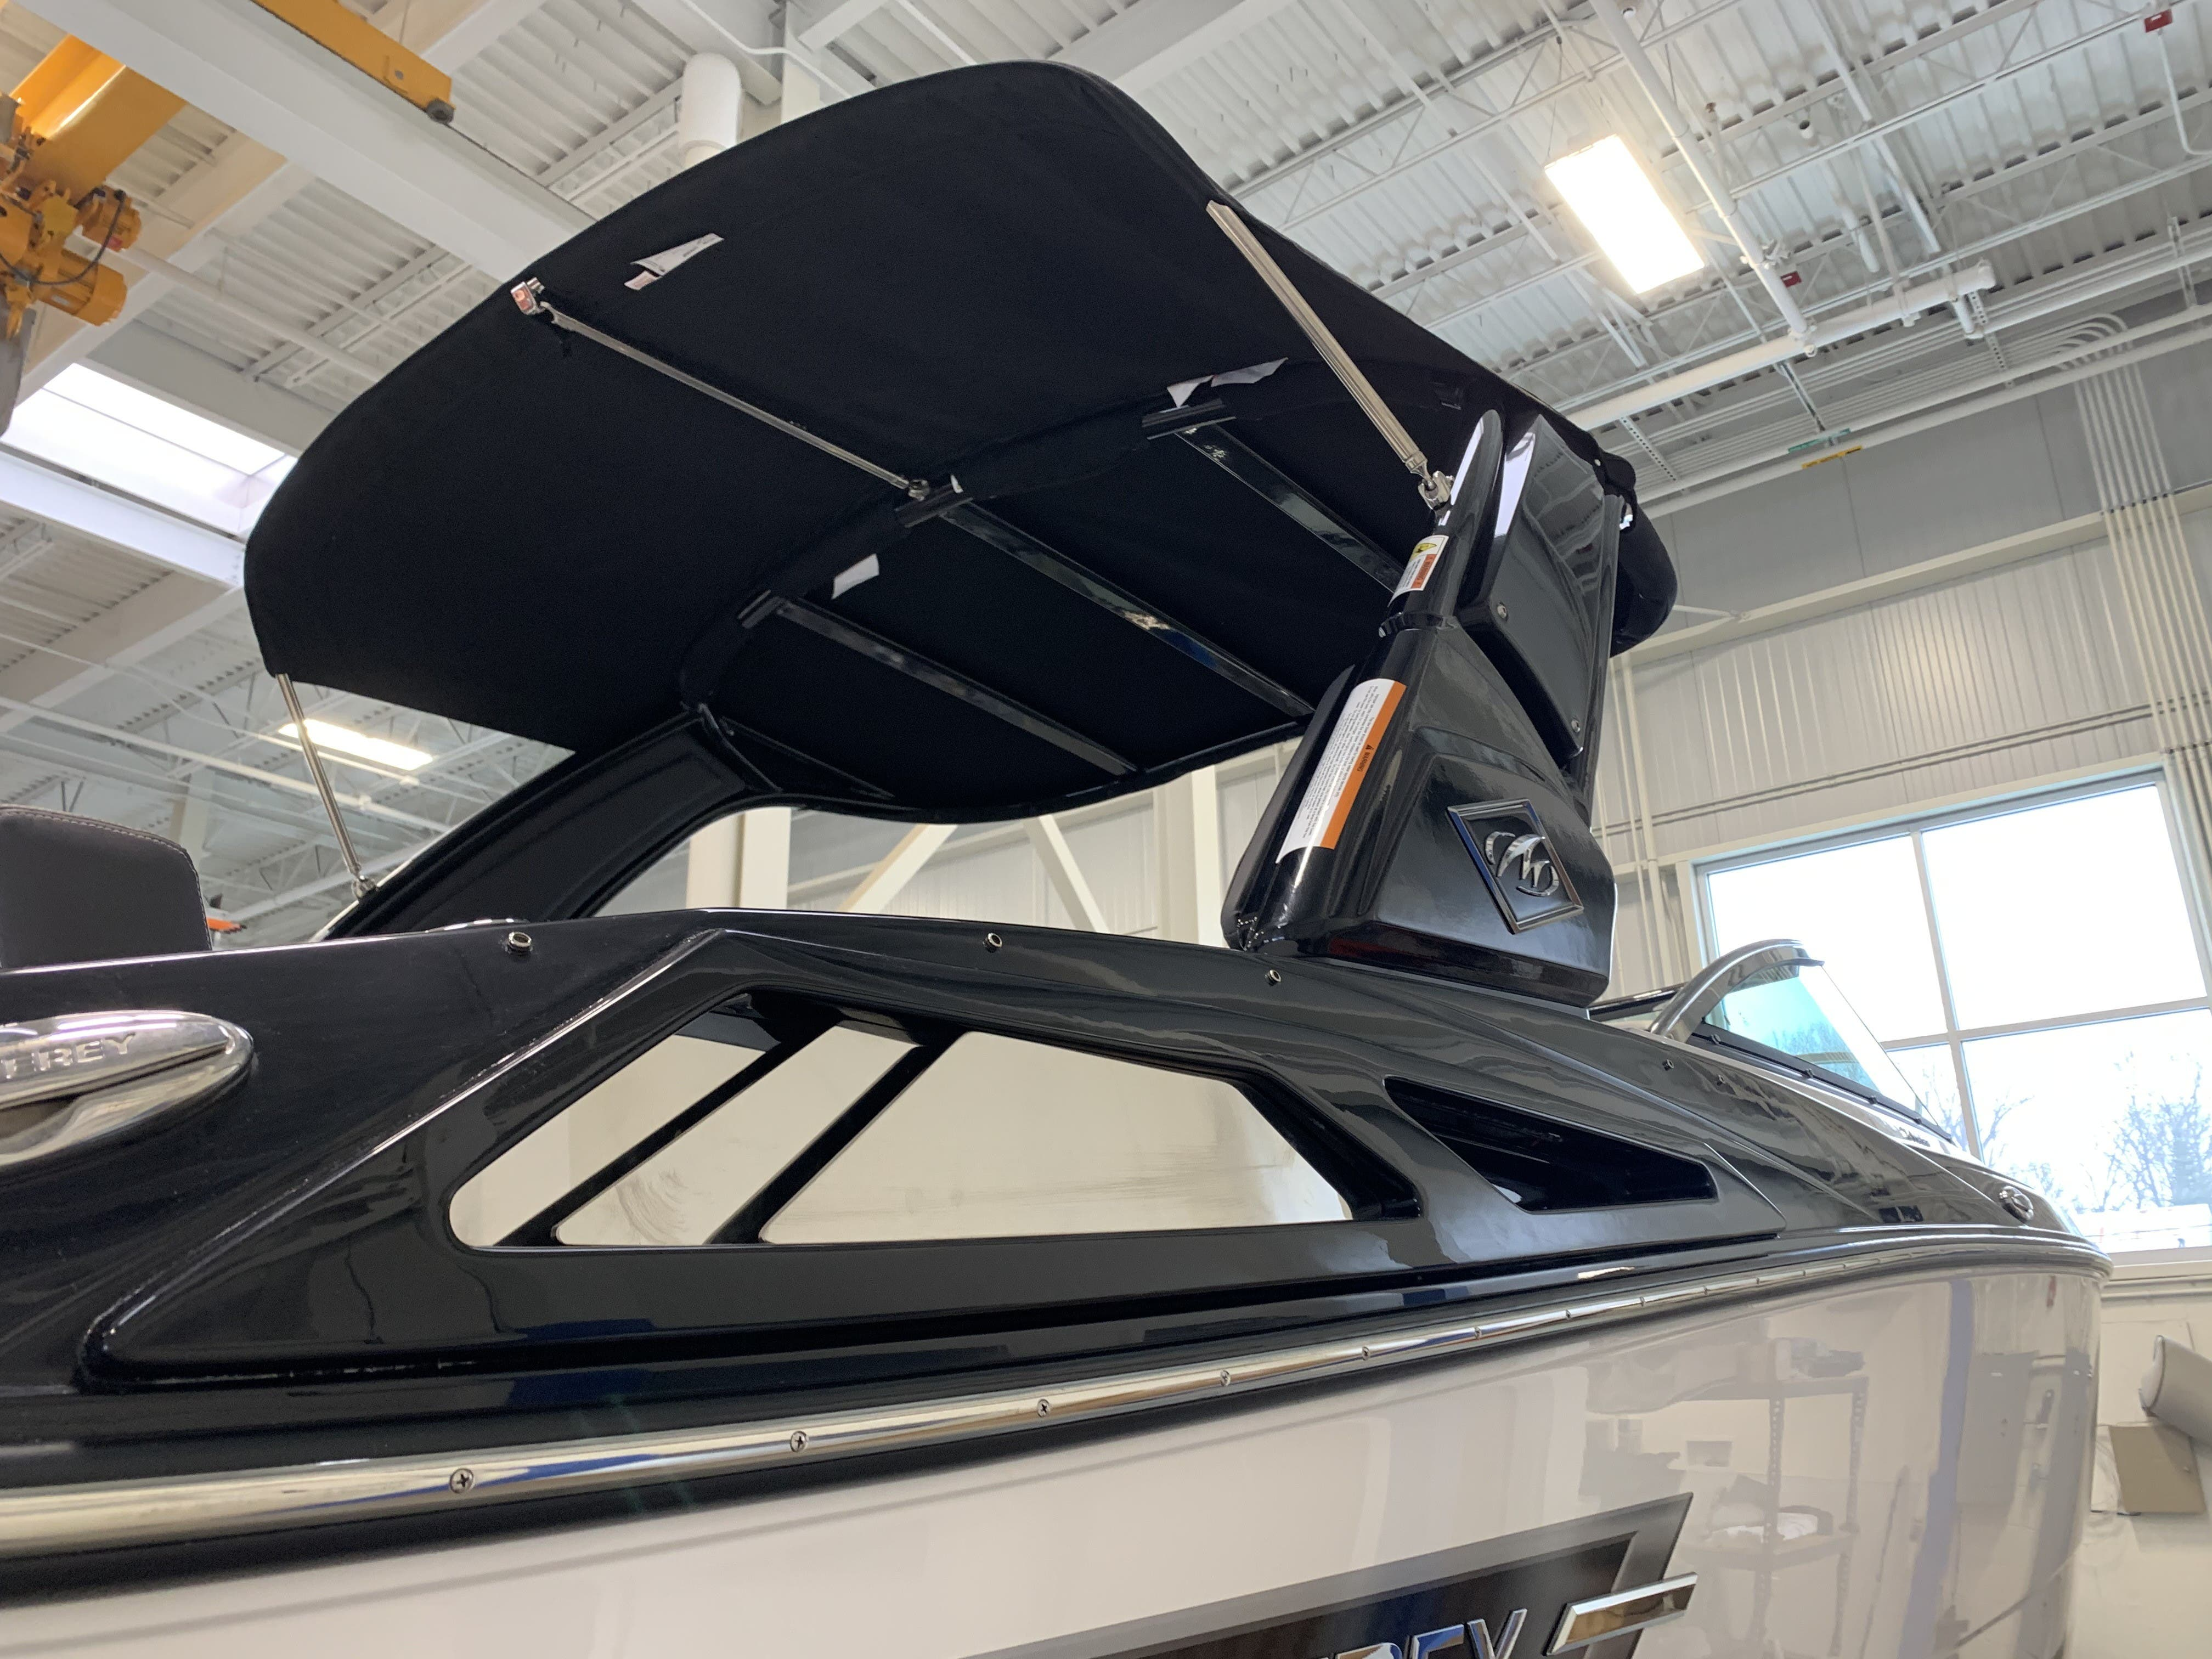 2021 Monterey boat for sale, model of the boat is 278SS & Image # 18 of 20